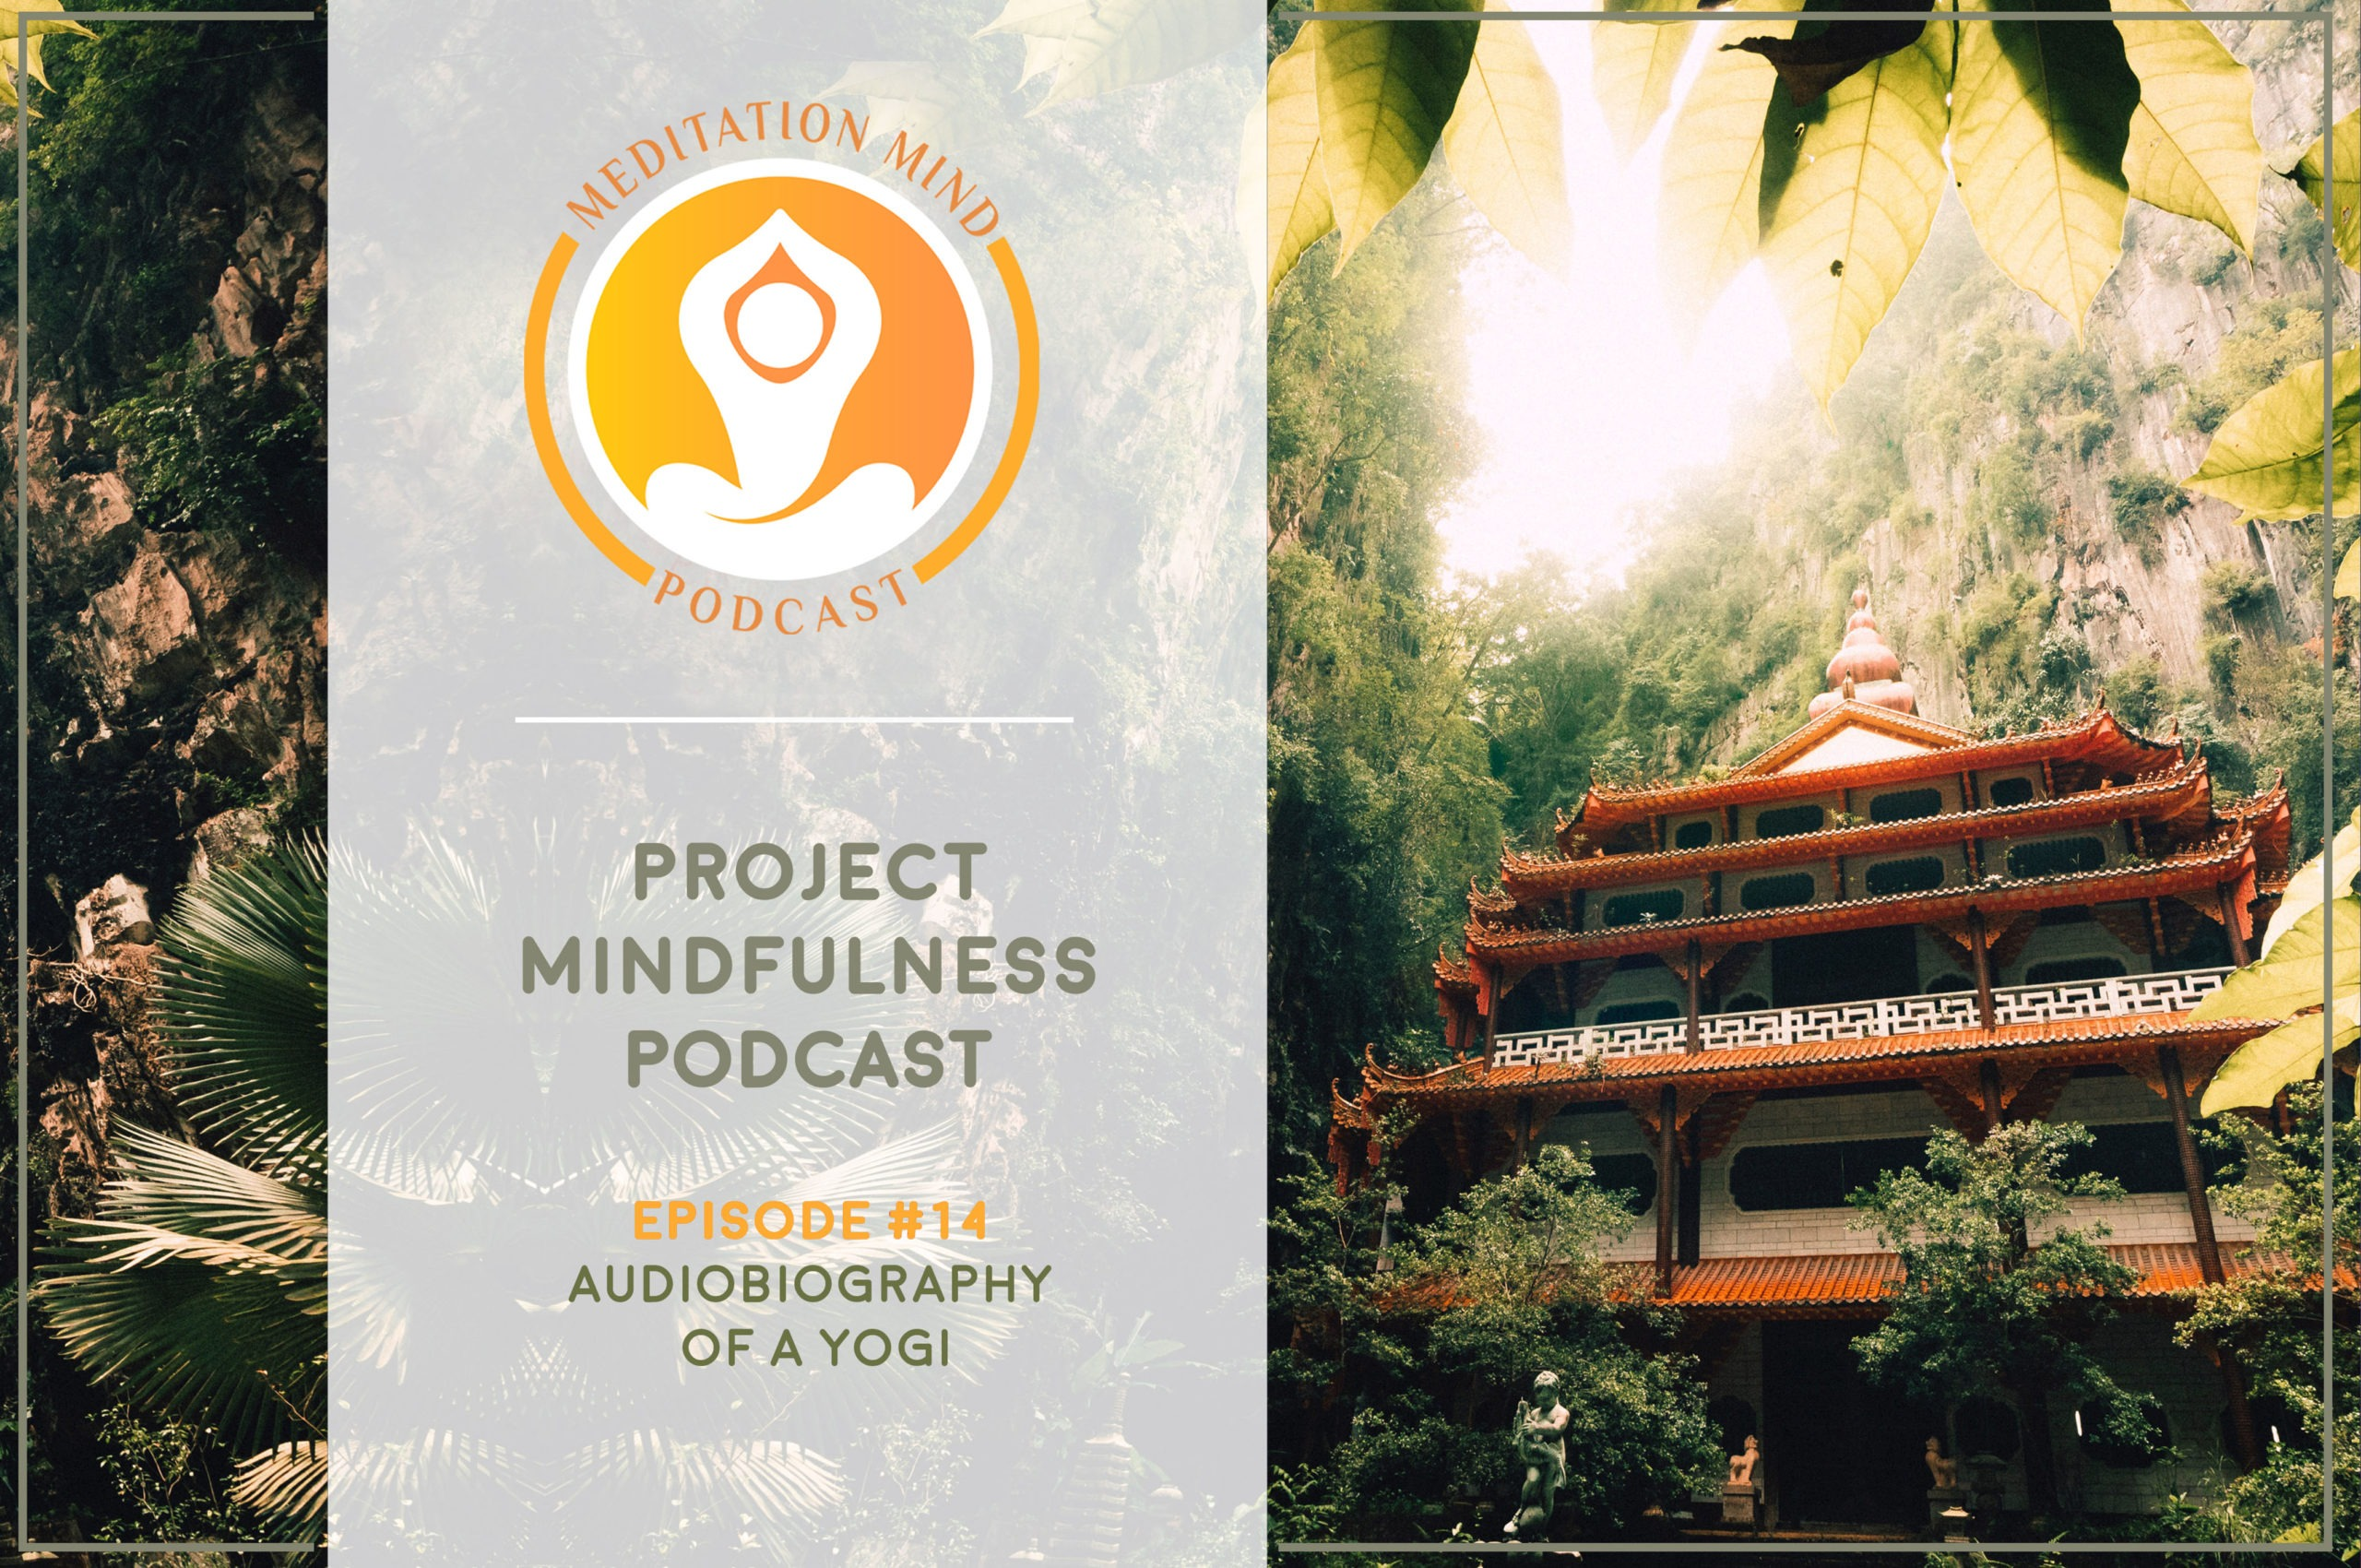 Rajan talks about his time as a monastic in a Hindu monastery and what he learned about meditation